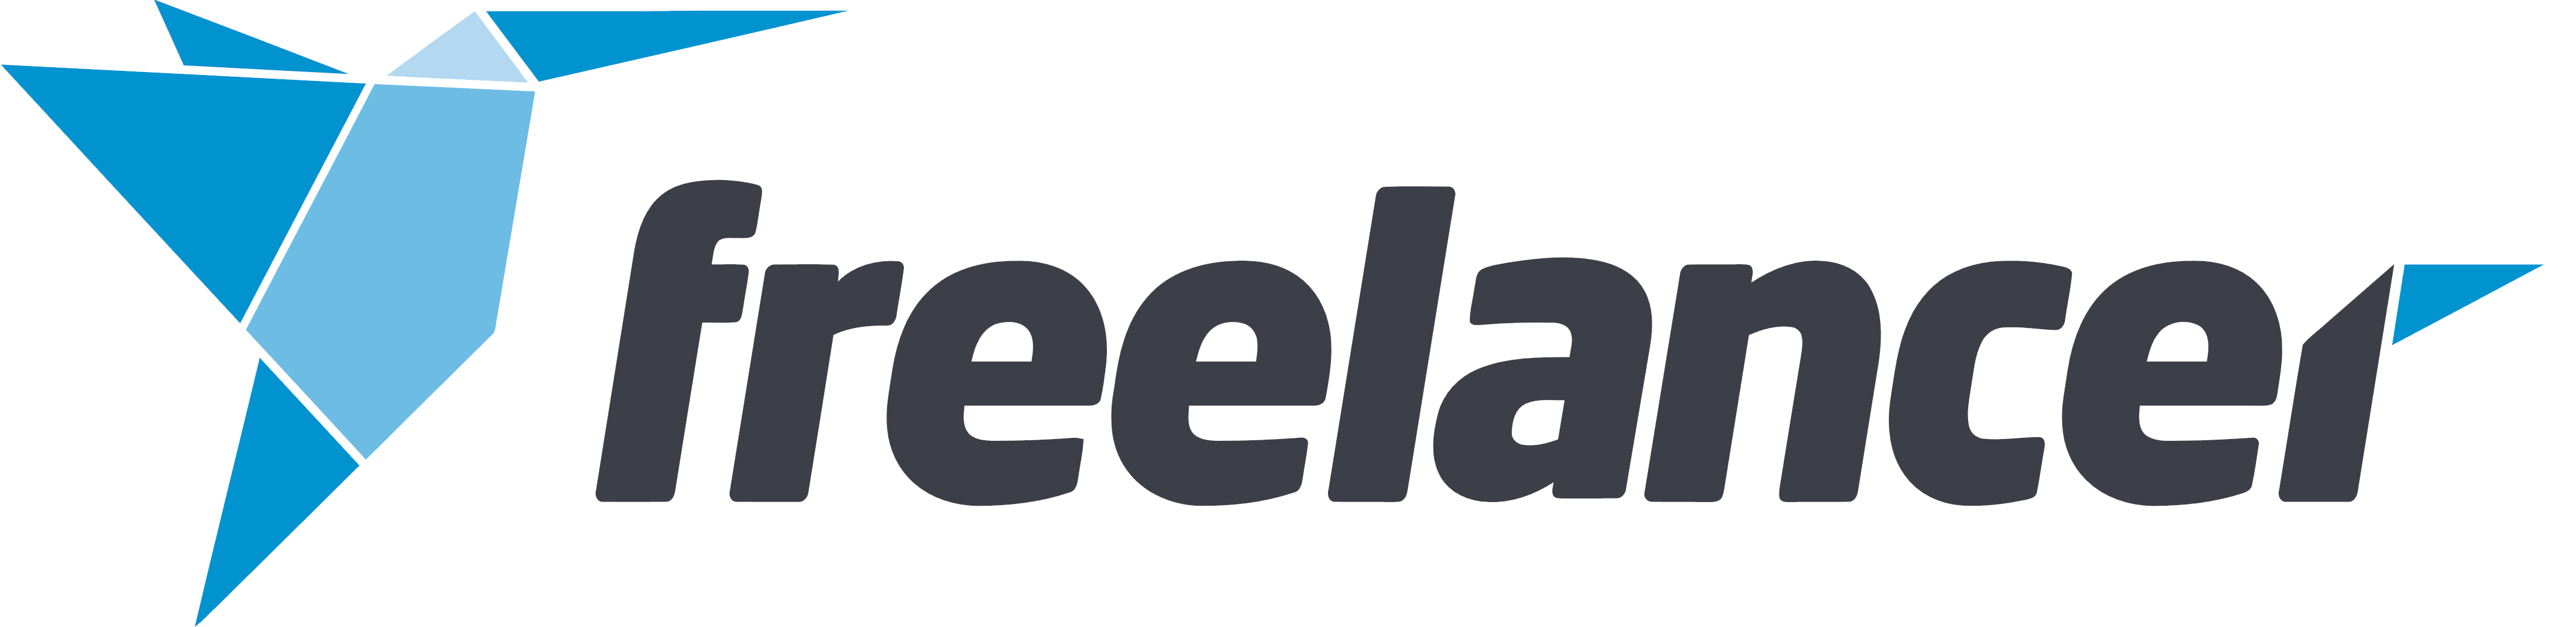 freelancer_logo